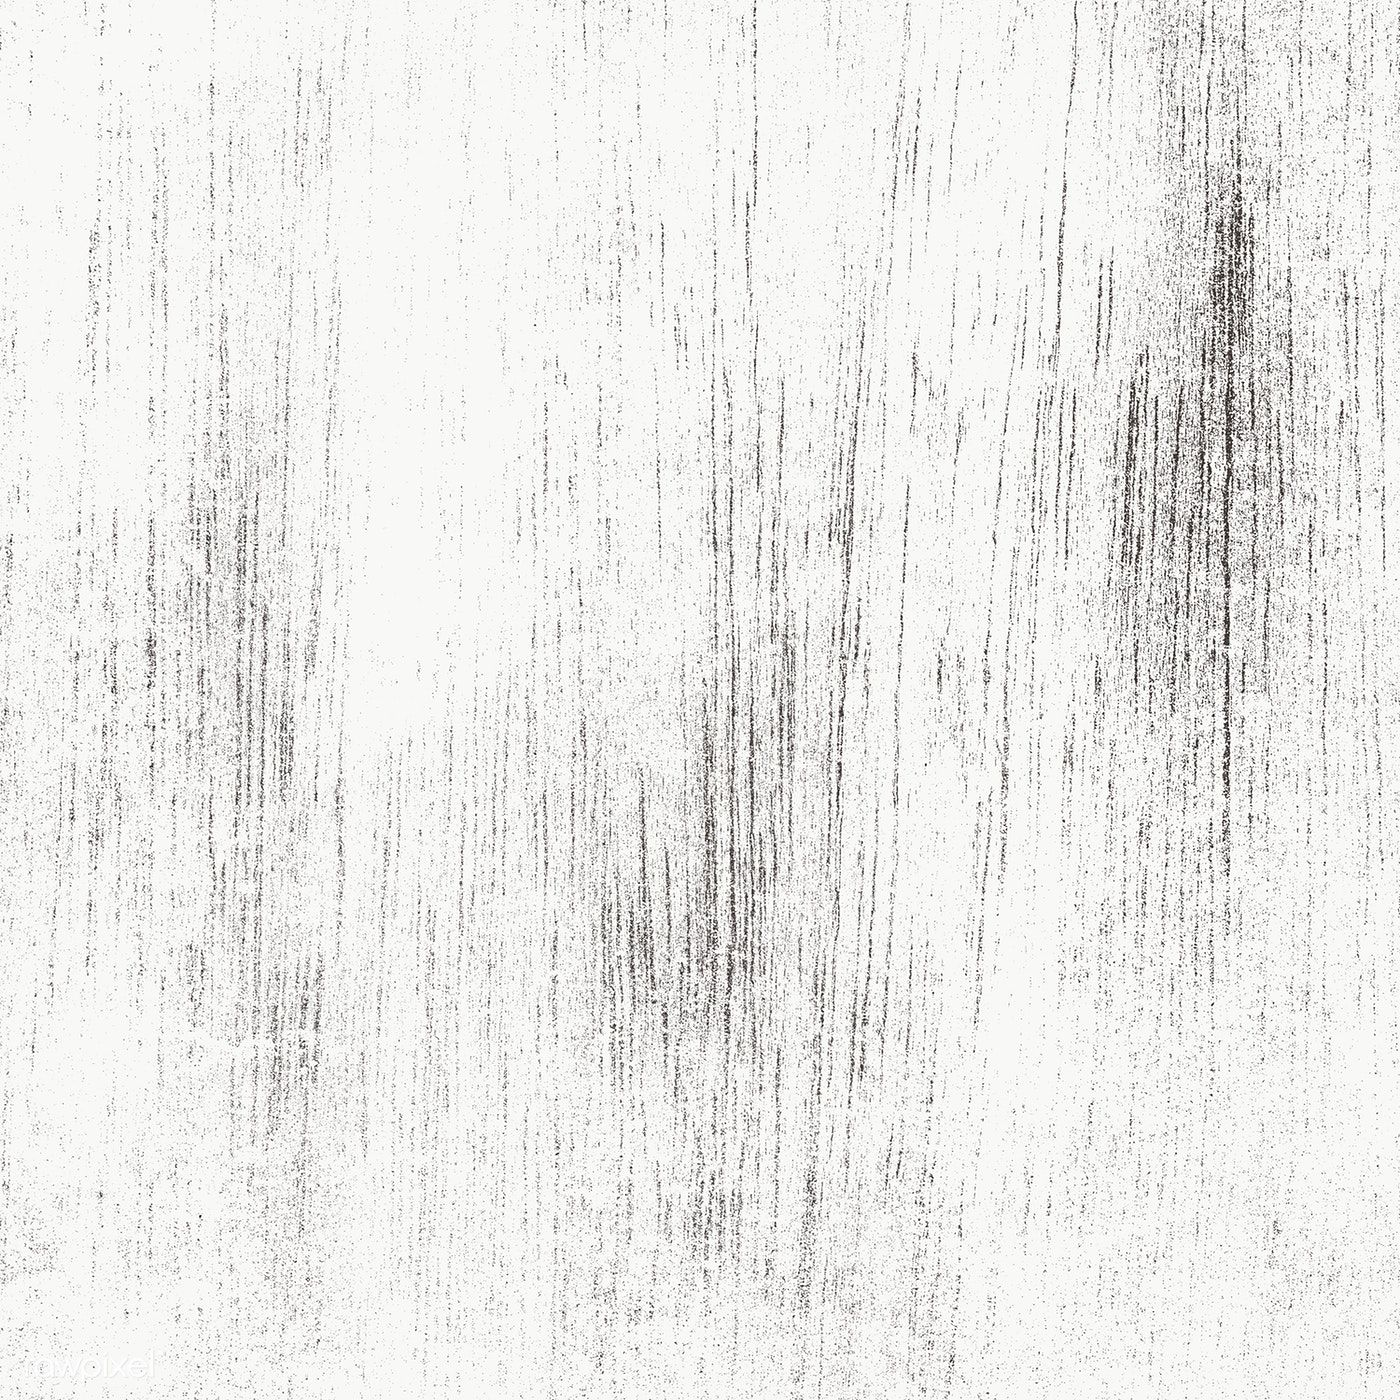 Bleach Wooden Textured Design Background Transparent Png Free Image By Rawpixel Com Adj Wood Texture Background White Wood Texture Bleached Wood